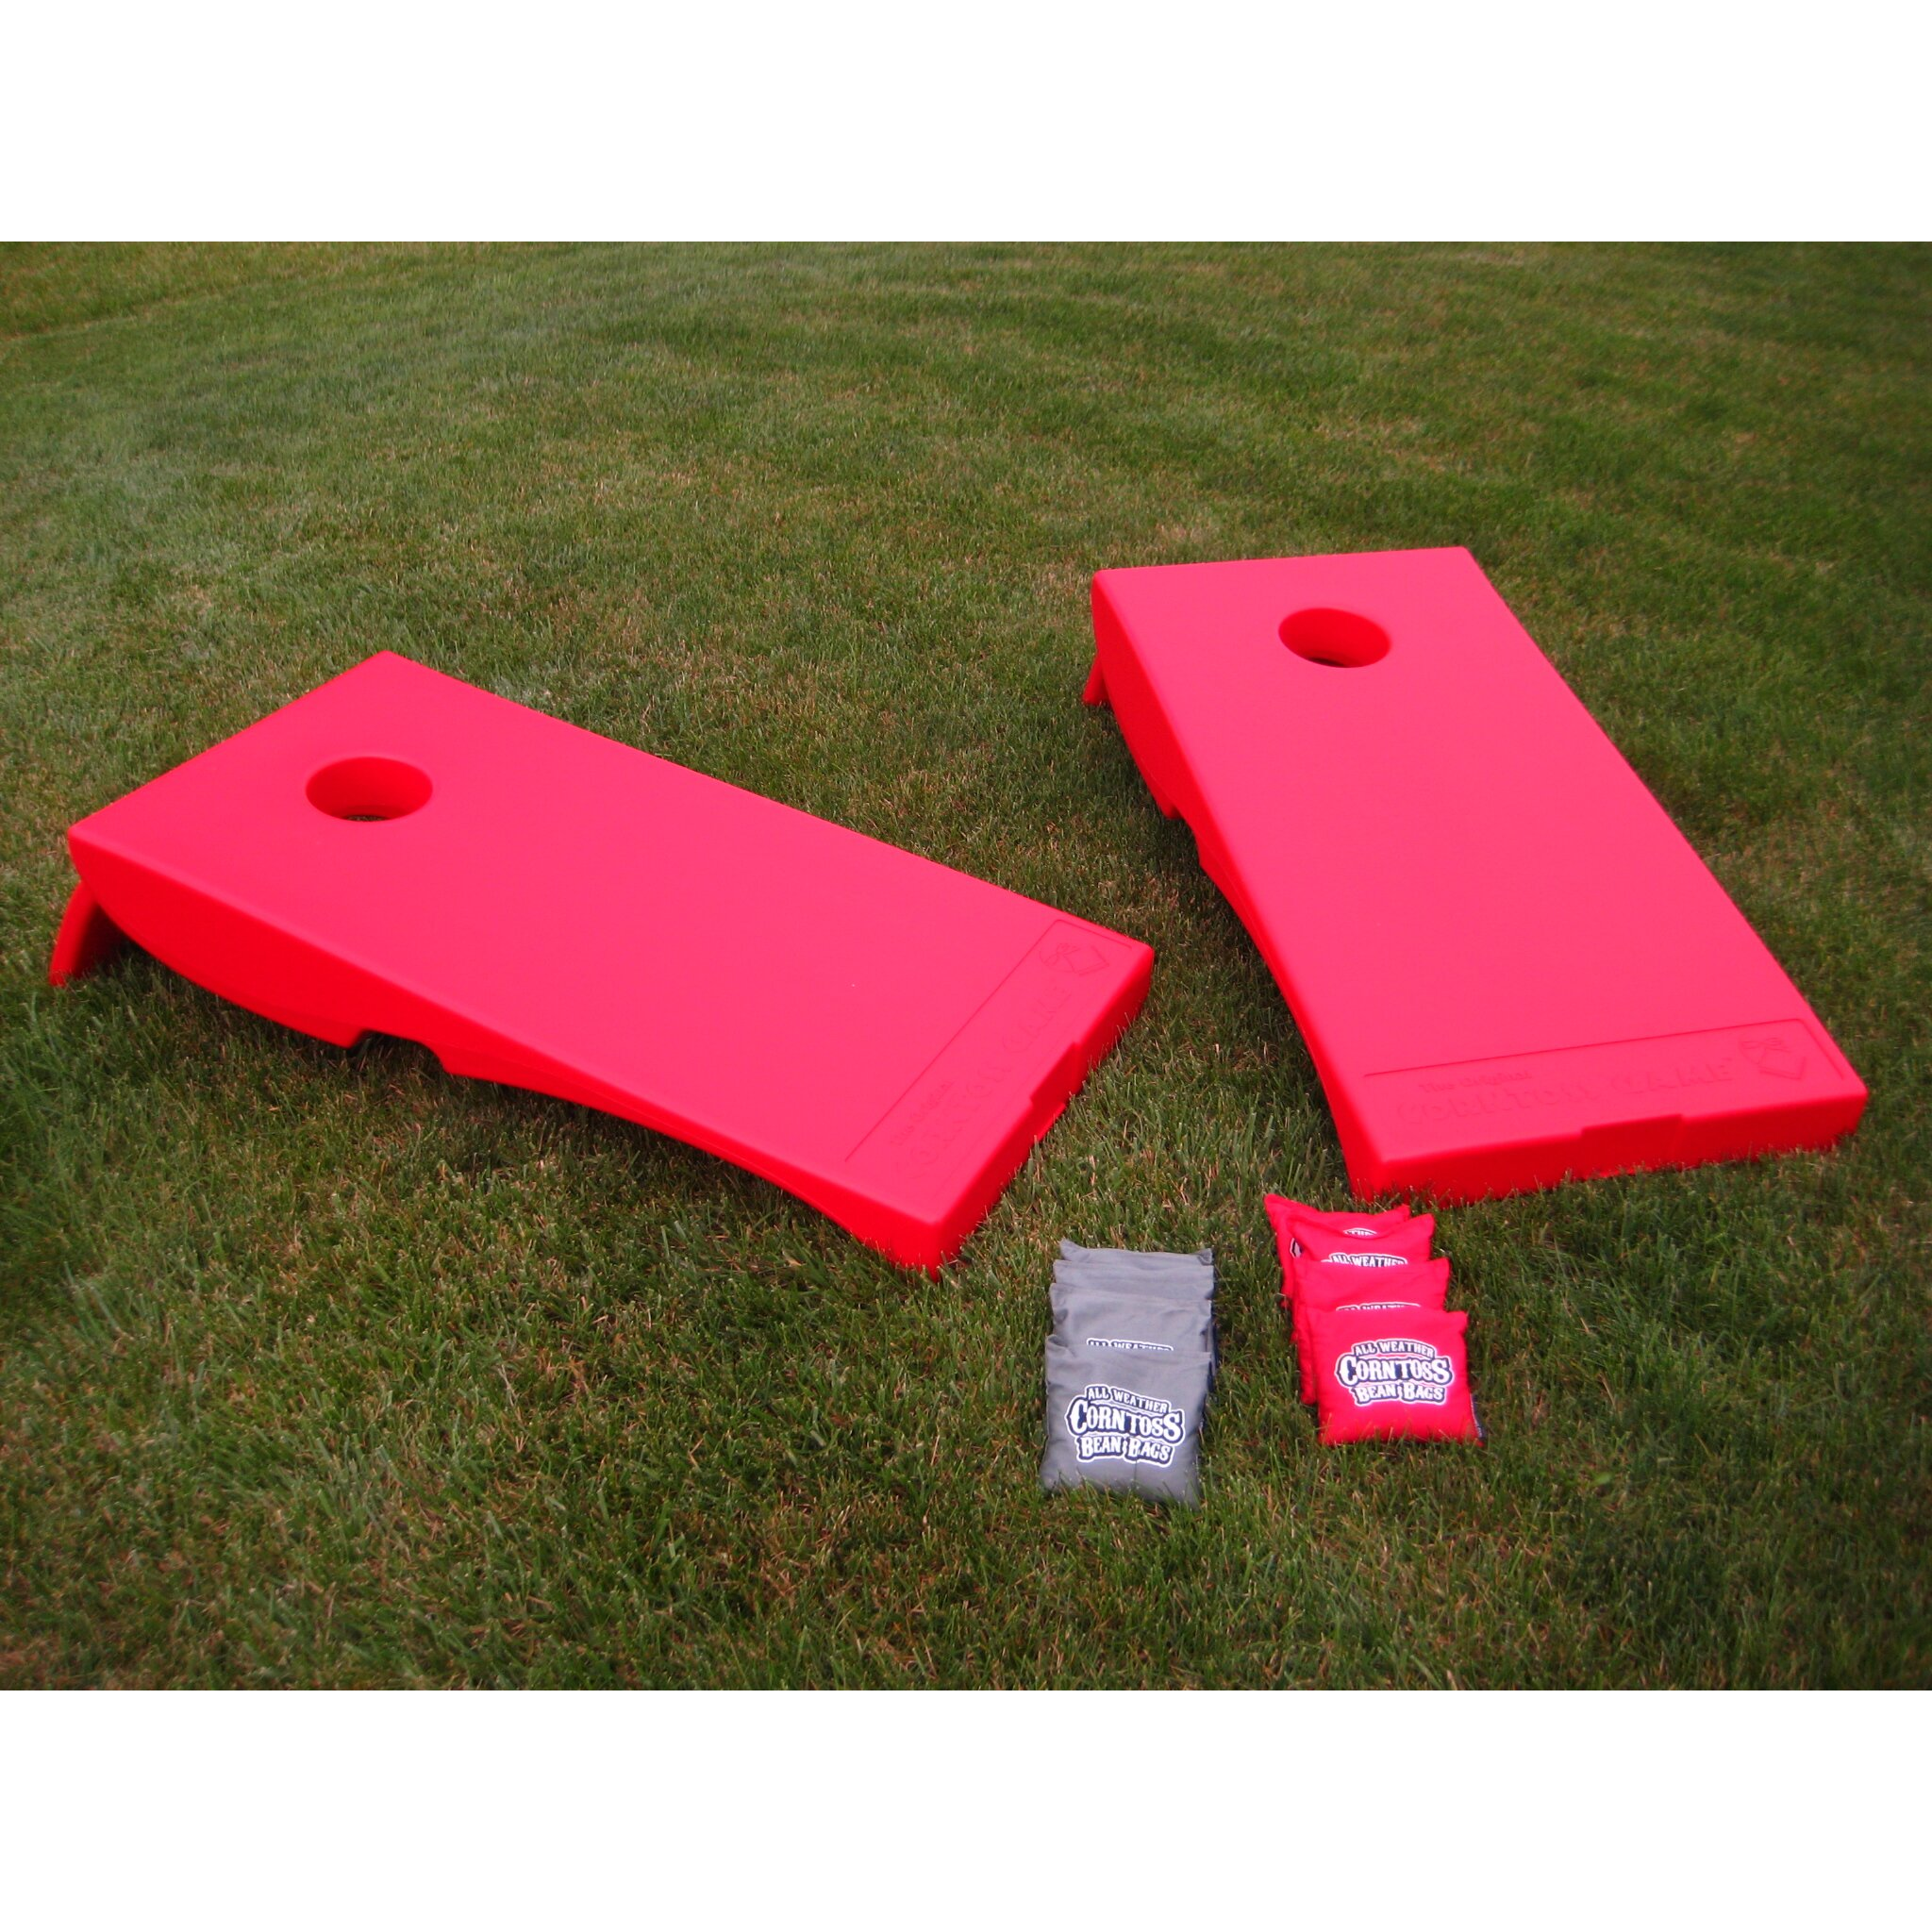 driveway games company all weather corntoss bean bag game. Black Bedroom Furniture Sets. Home Design Ideas